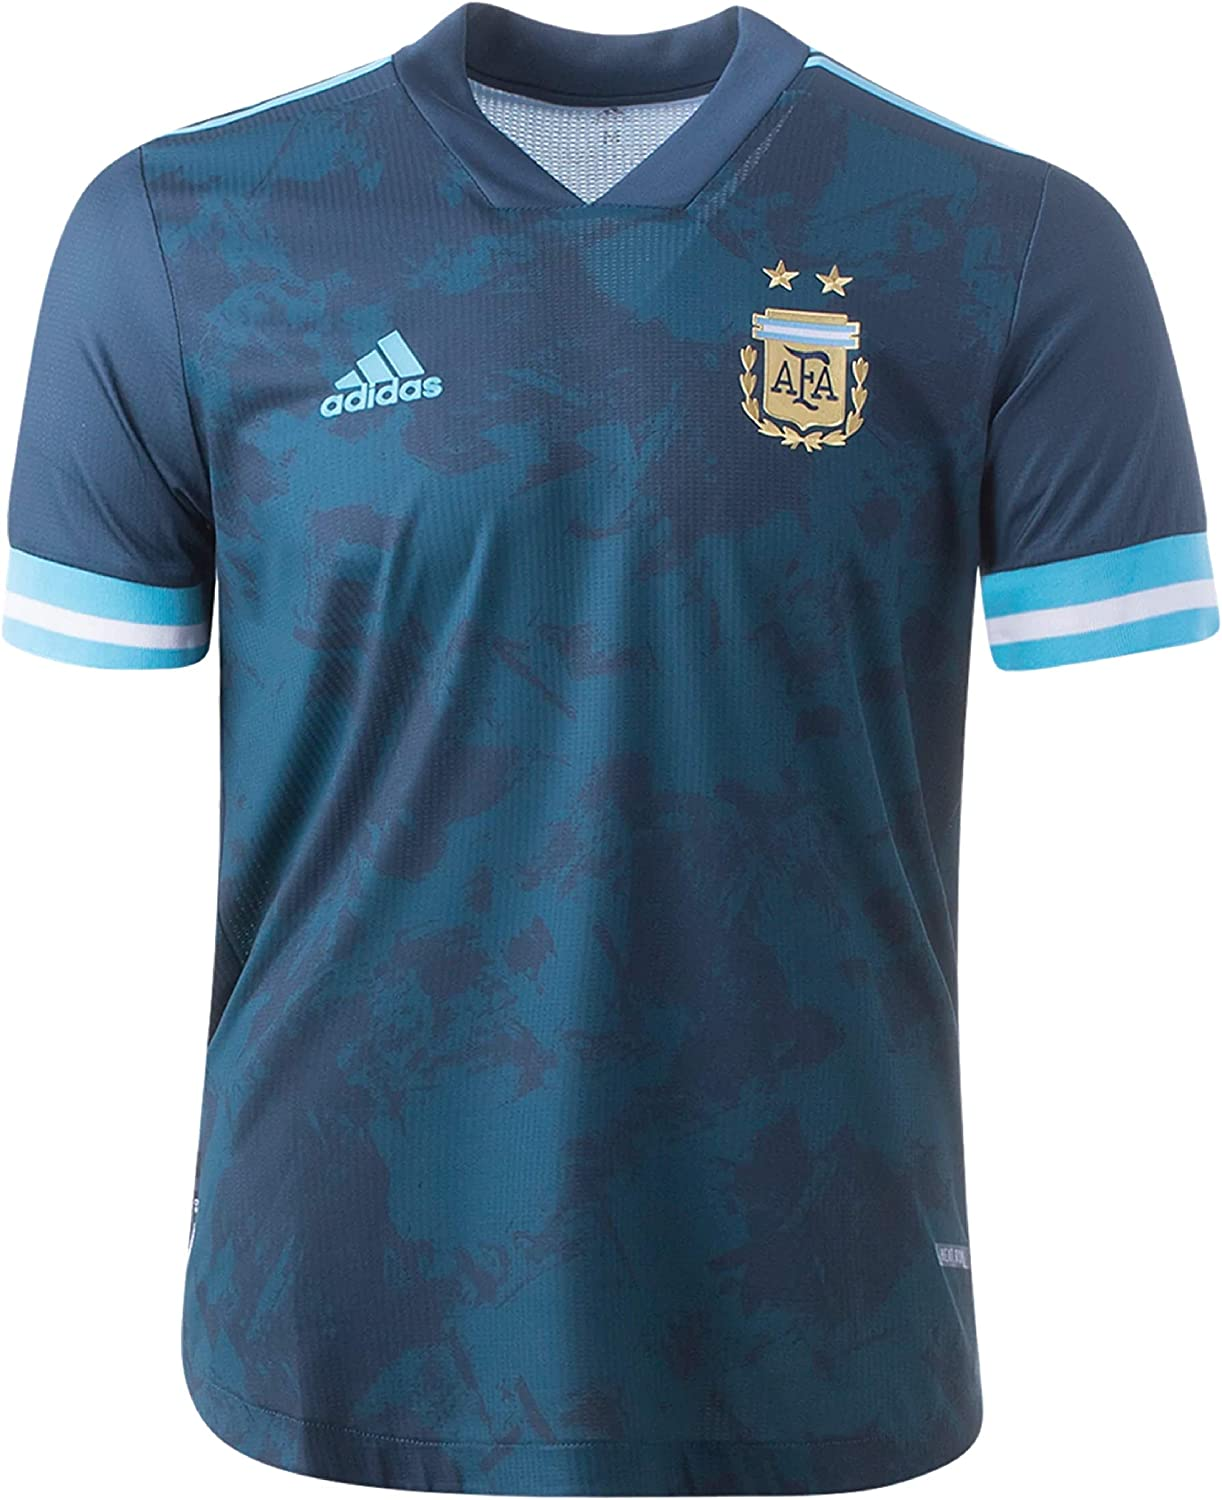 adidas Argentina Away Authentic Quality inspection Soccer 2020 Jersey- Mens Max 90% OFF